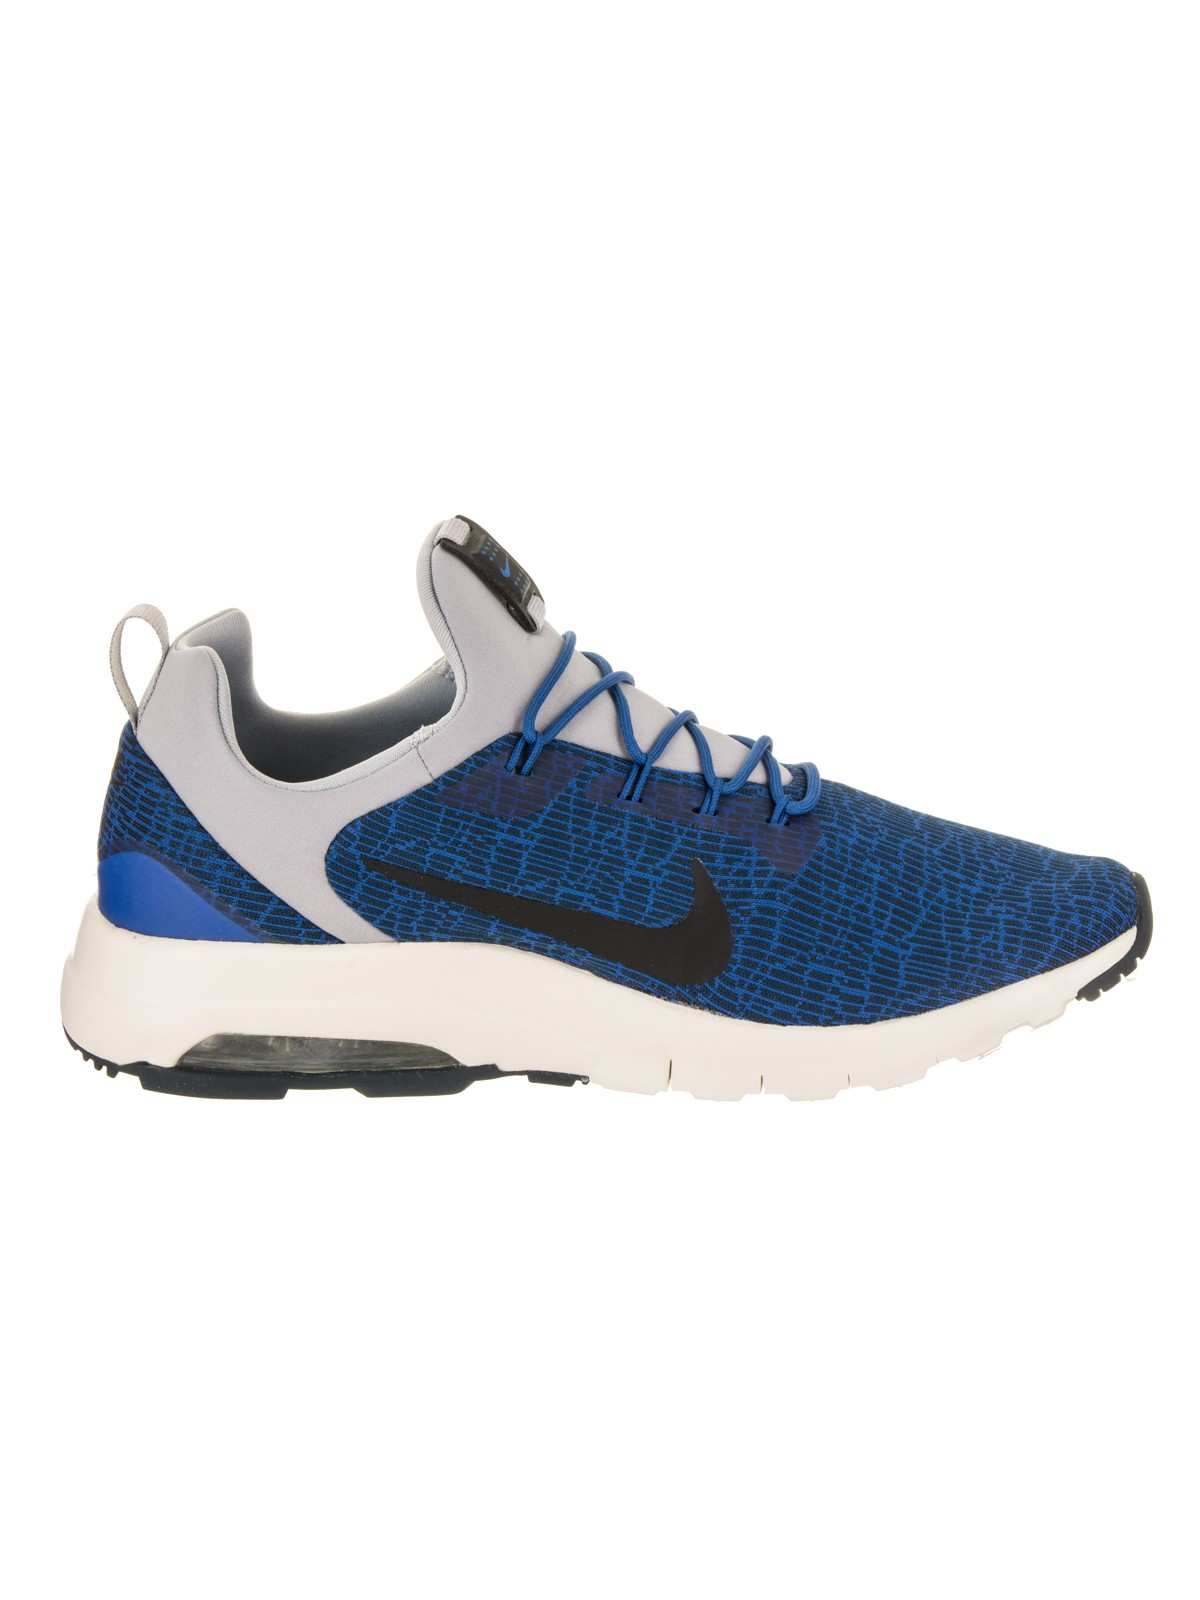 Nike Men's Air Max Motion Racer Running Shoe